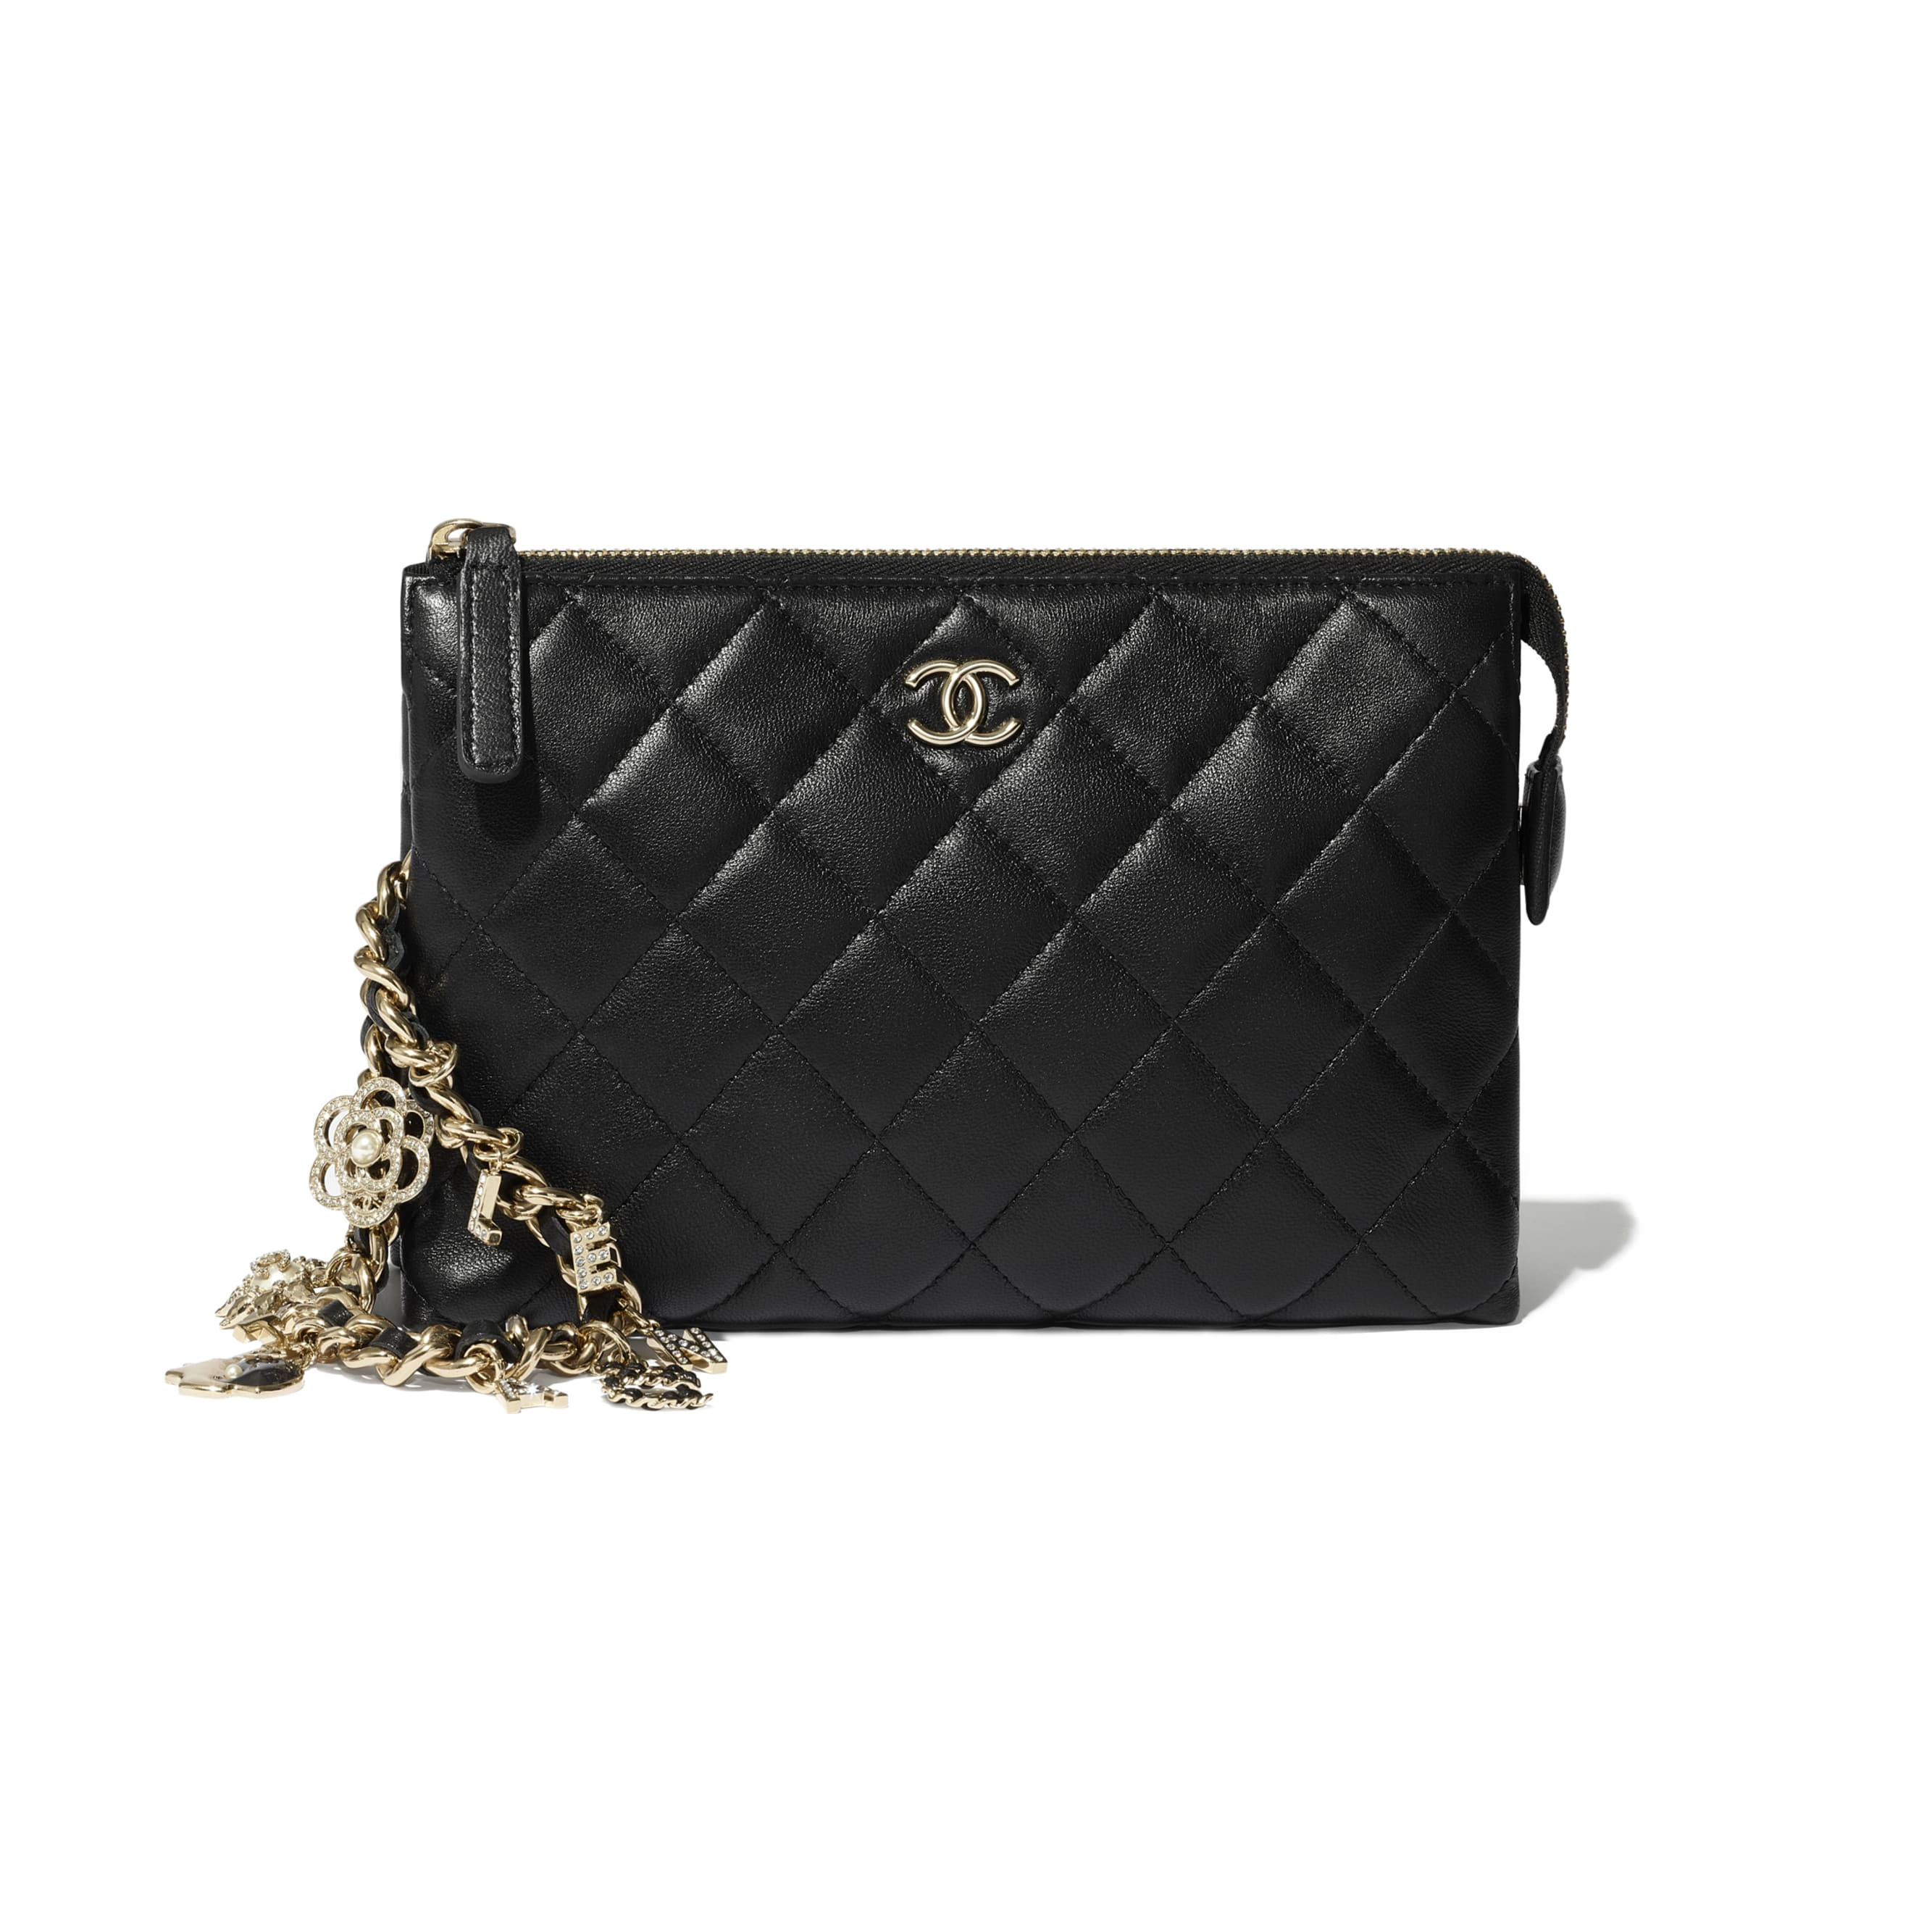 Pouch - Black - Lambskin, Charms & Gold-Tone Metal - CHANEL - Extra view - see standard sized version